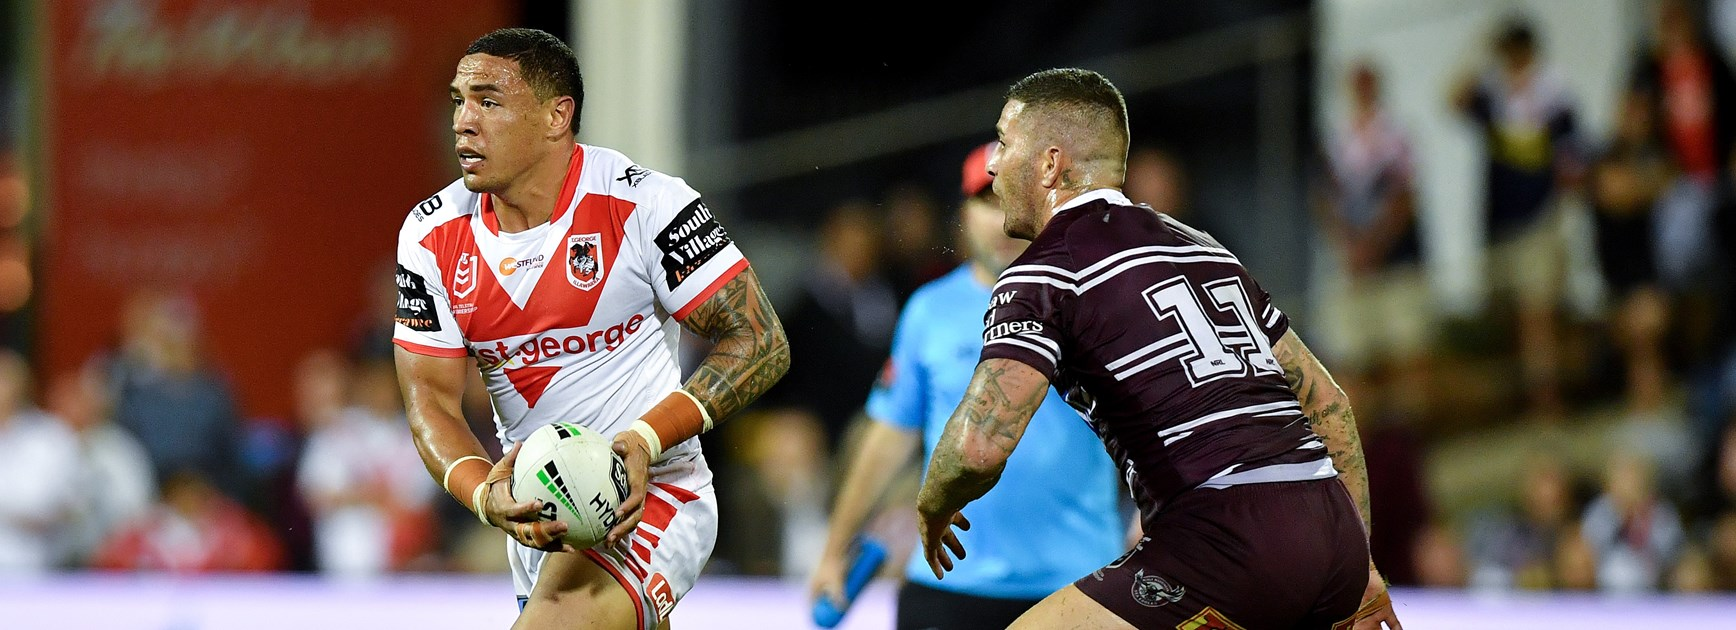 Frizell to wear protective cup for rest of season